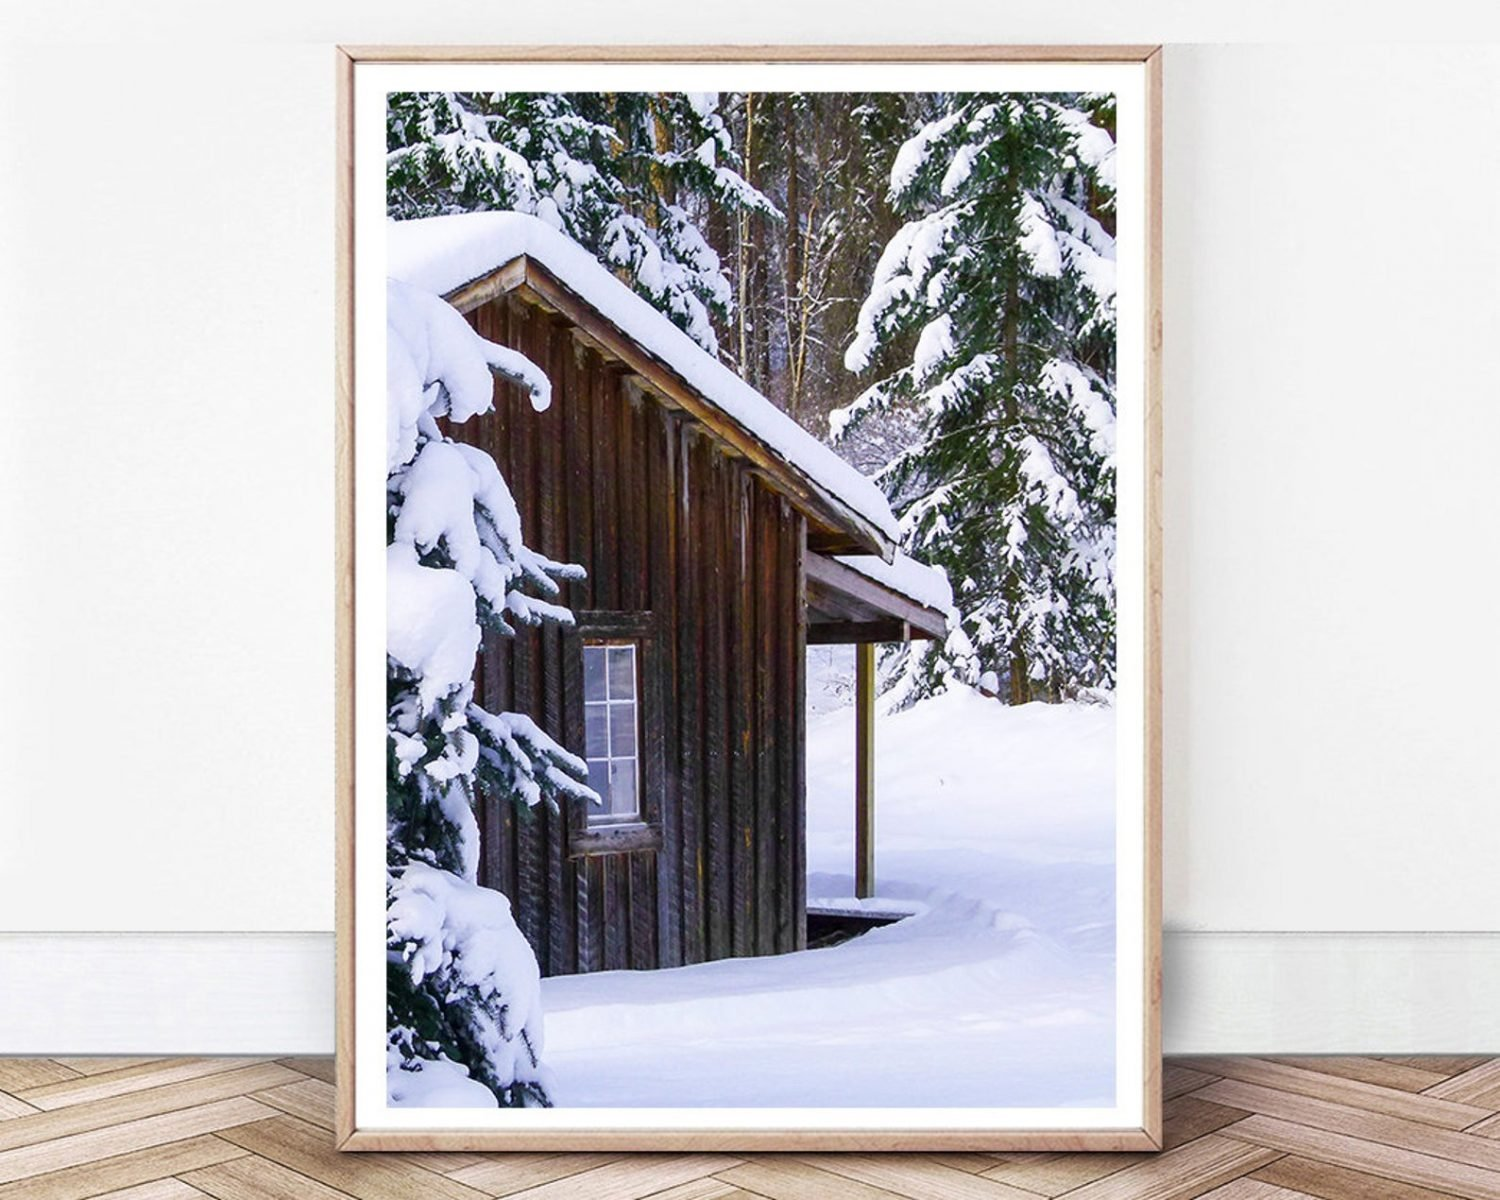 Winter Nature Print, Winter Decor, Forest Cabin Print, Ski House Wall Art, Winter Scene, Christmas Gift Printable, Winter Cabin Forest Photo